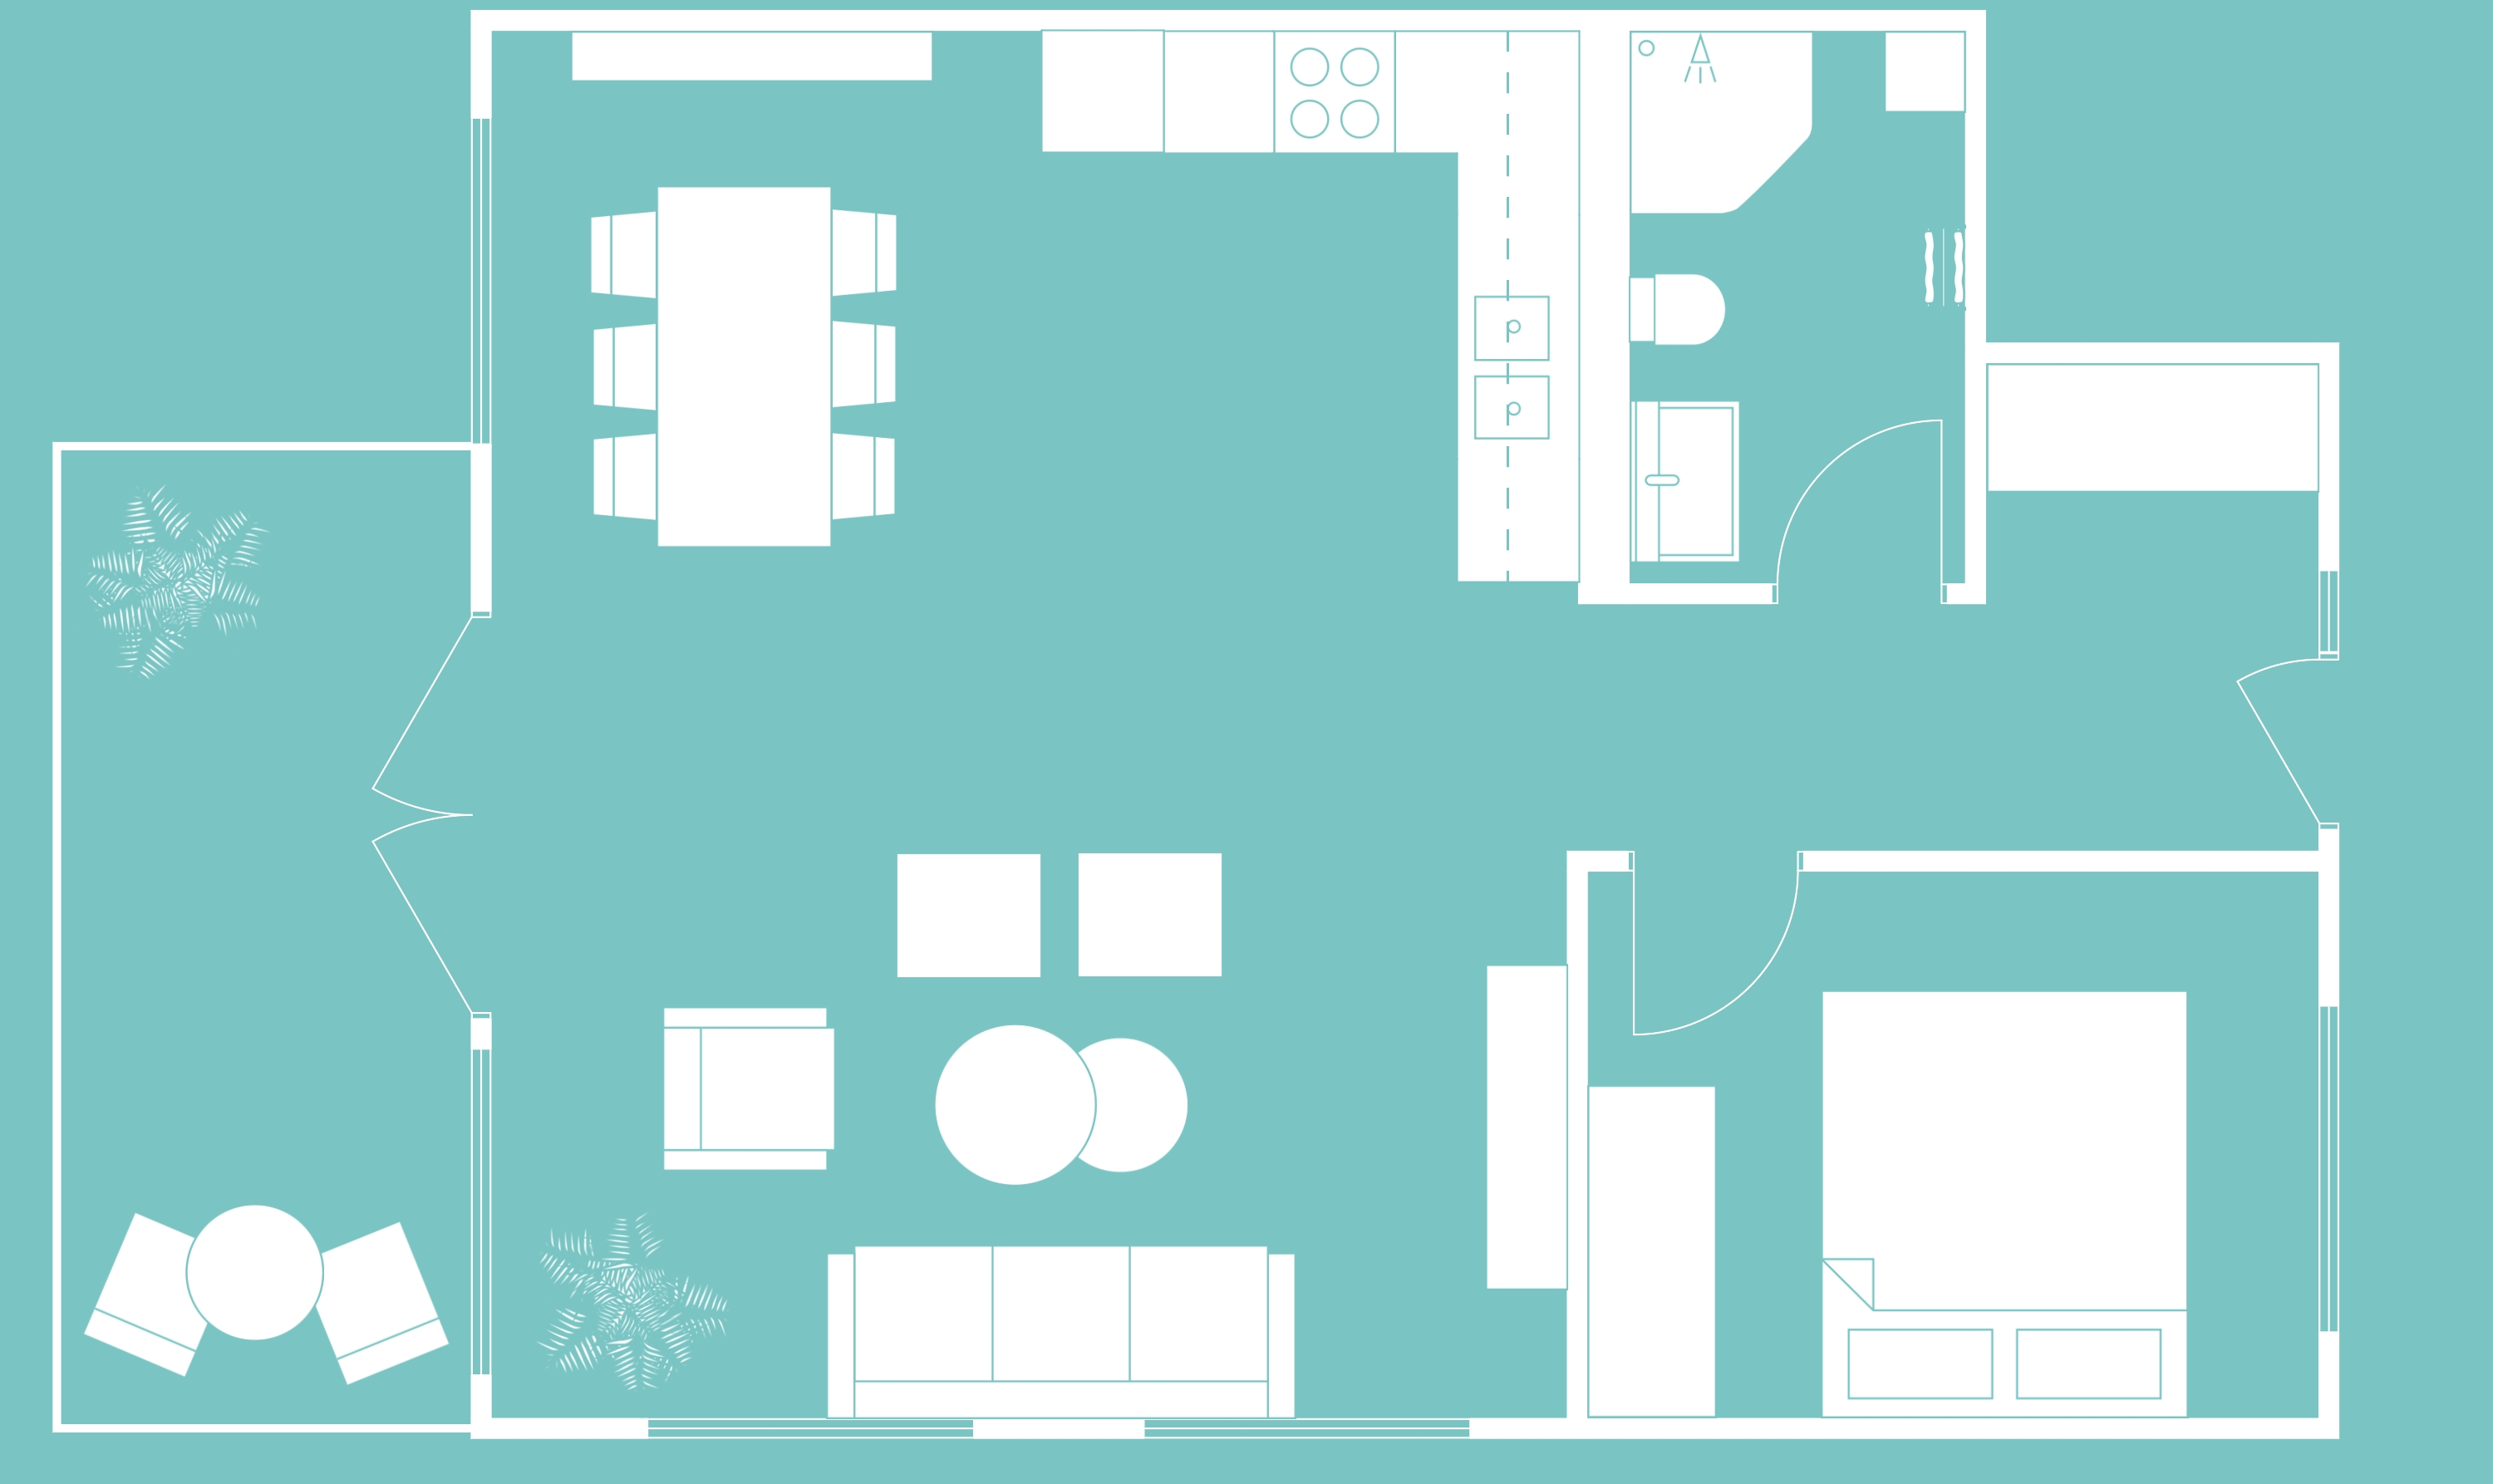 Floor_Plans_Blue_-_Level_1_-_2D_Floor_Plan.jpg